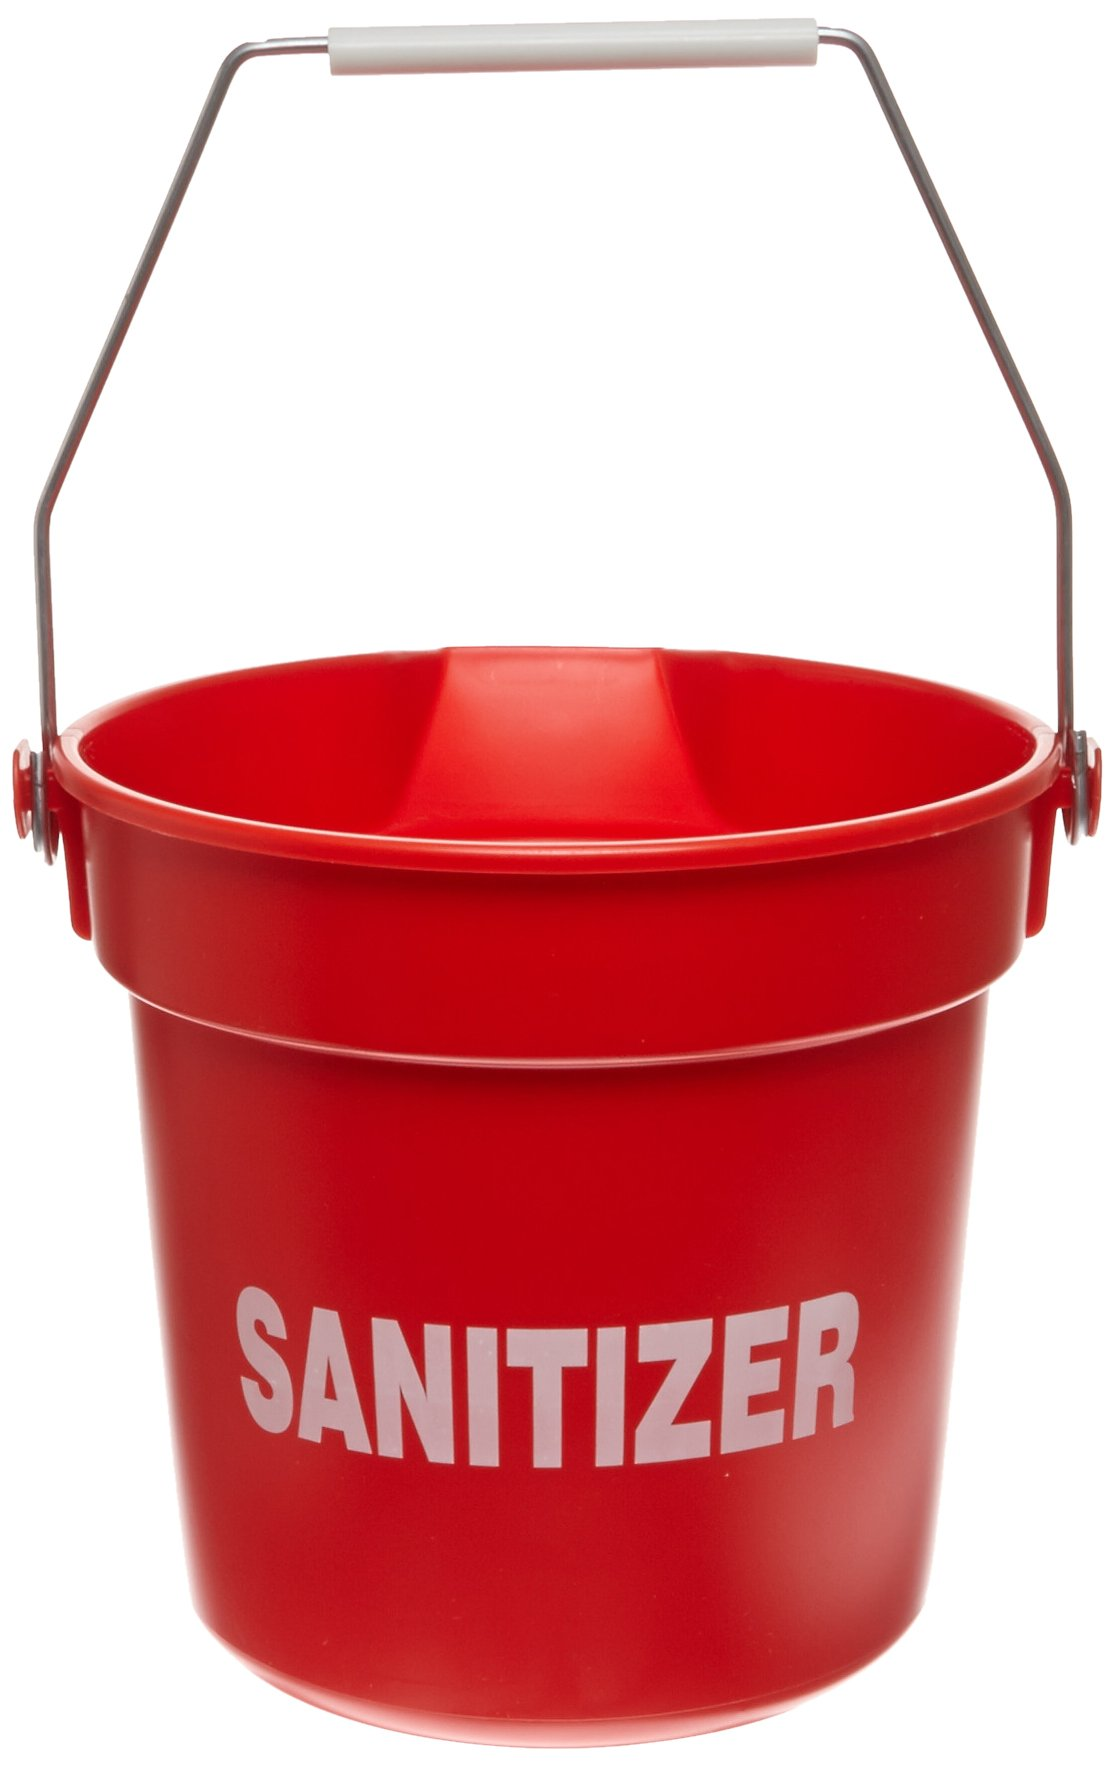 Impact 5510RS High Density Polypropylene Deluxe Heavy-Duty Bucket with Sanitizer Imprint, 10 qt Capacity, 10-1/4'' Length x 10-5/8'' Height, Red (Case of 12)